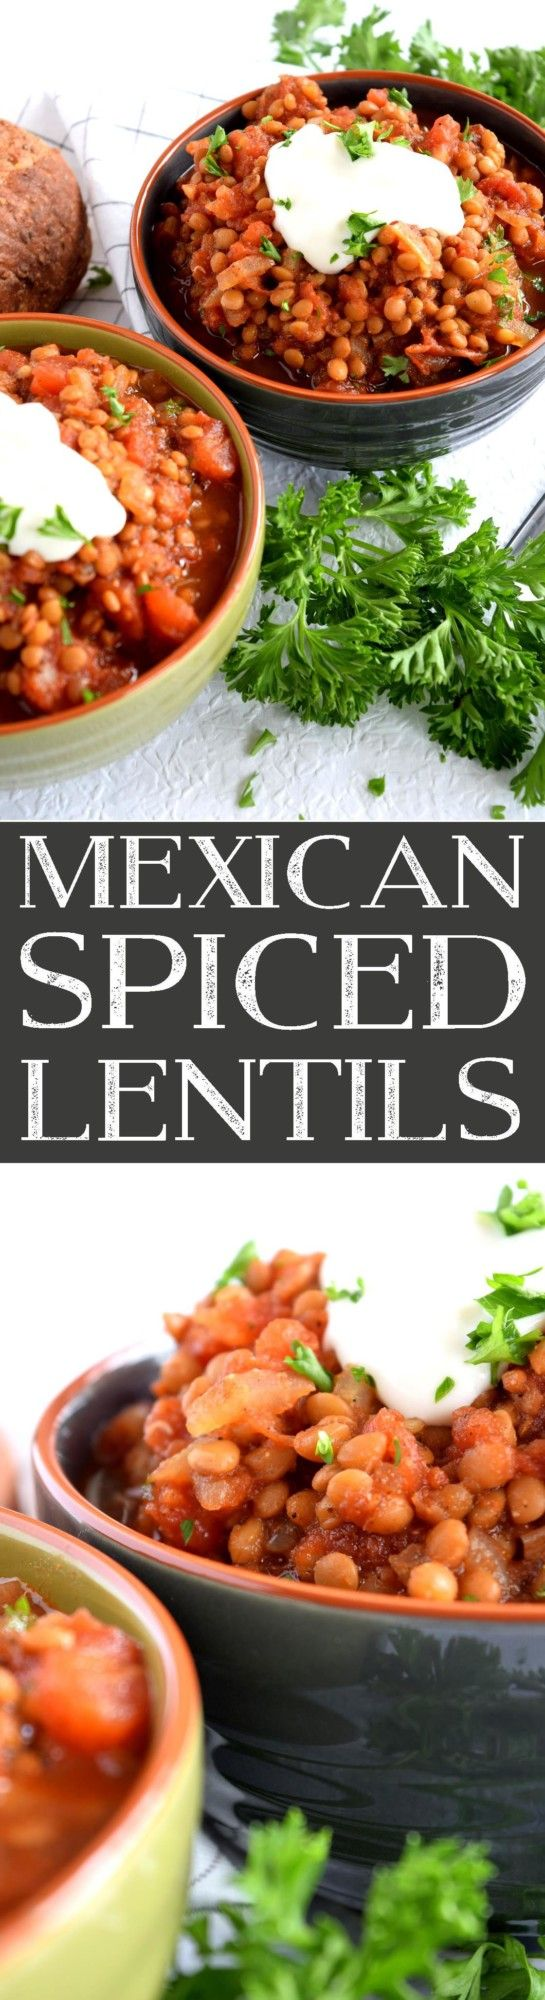 Mexican Spiced Lentils - Lord Byron's Kitchen